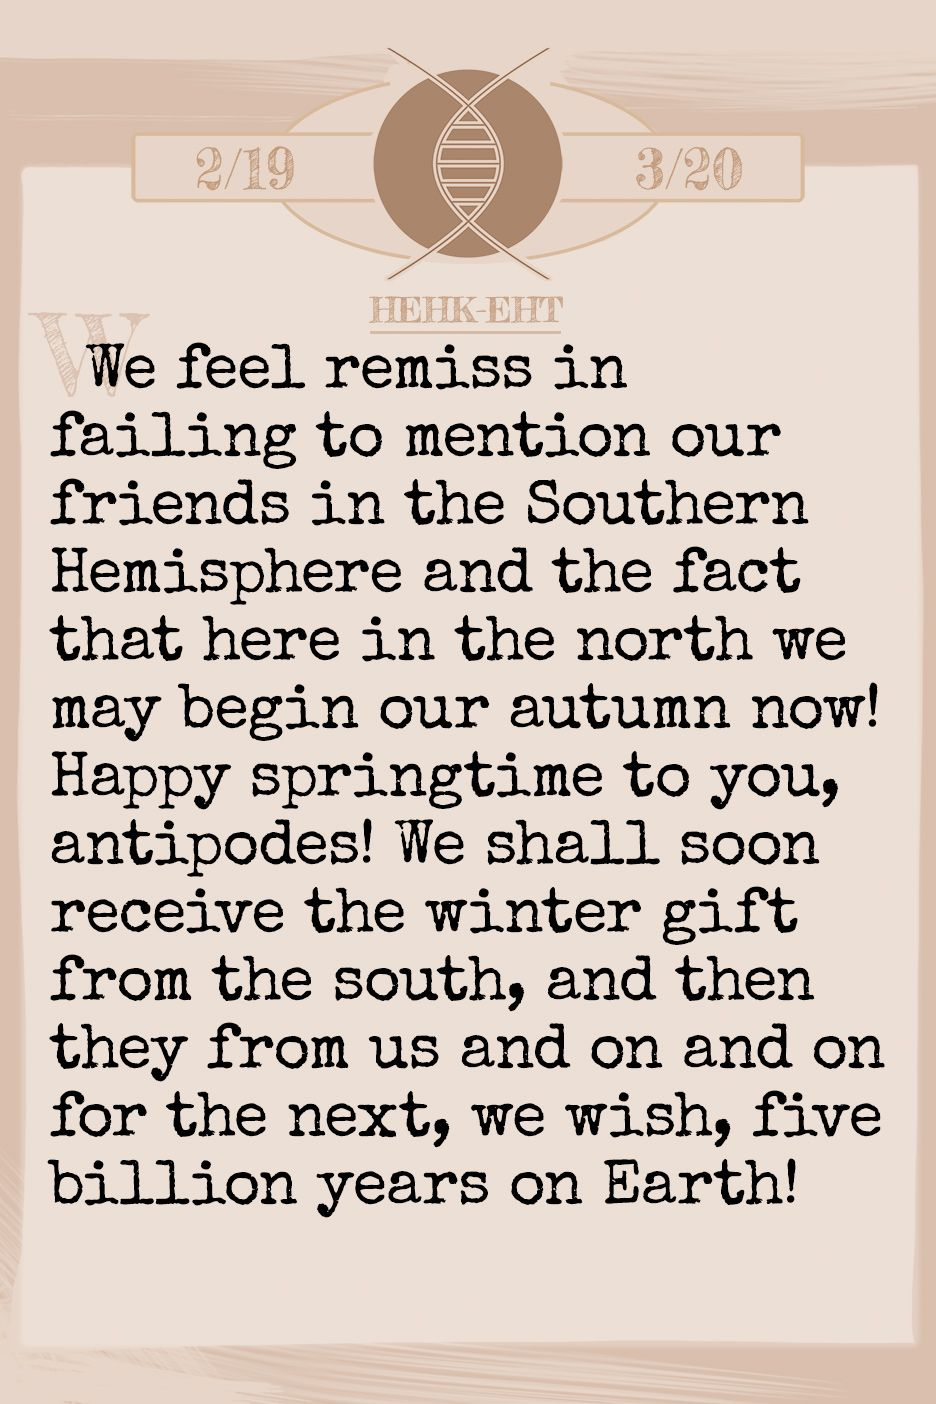 October 2019 Horoscope (Old sign: Pisces) We feel remiss in failing to mention our friends in the Southern Hemisphere and the fact that here in the north we may begin our autumn now! Happy springtime to you, antipodes! We shall soon receive the winter gift from the south, and then they from us and on and on for the next, we wish, five billion years on Earth!